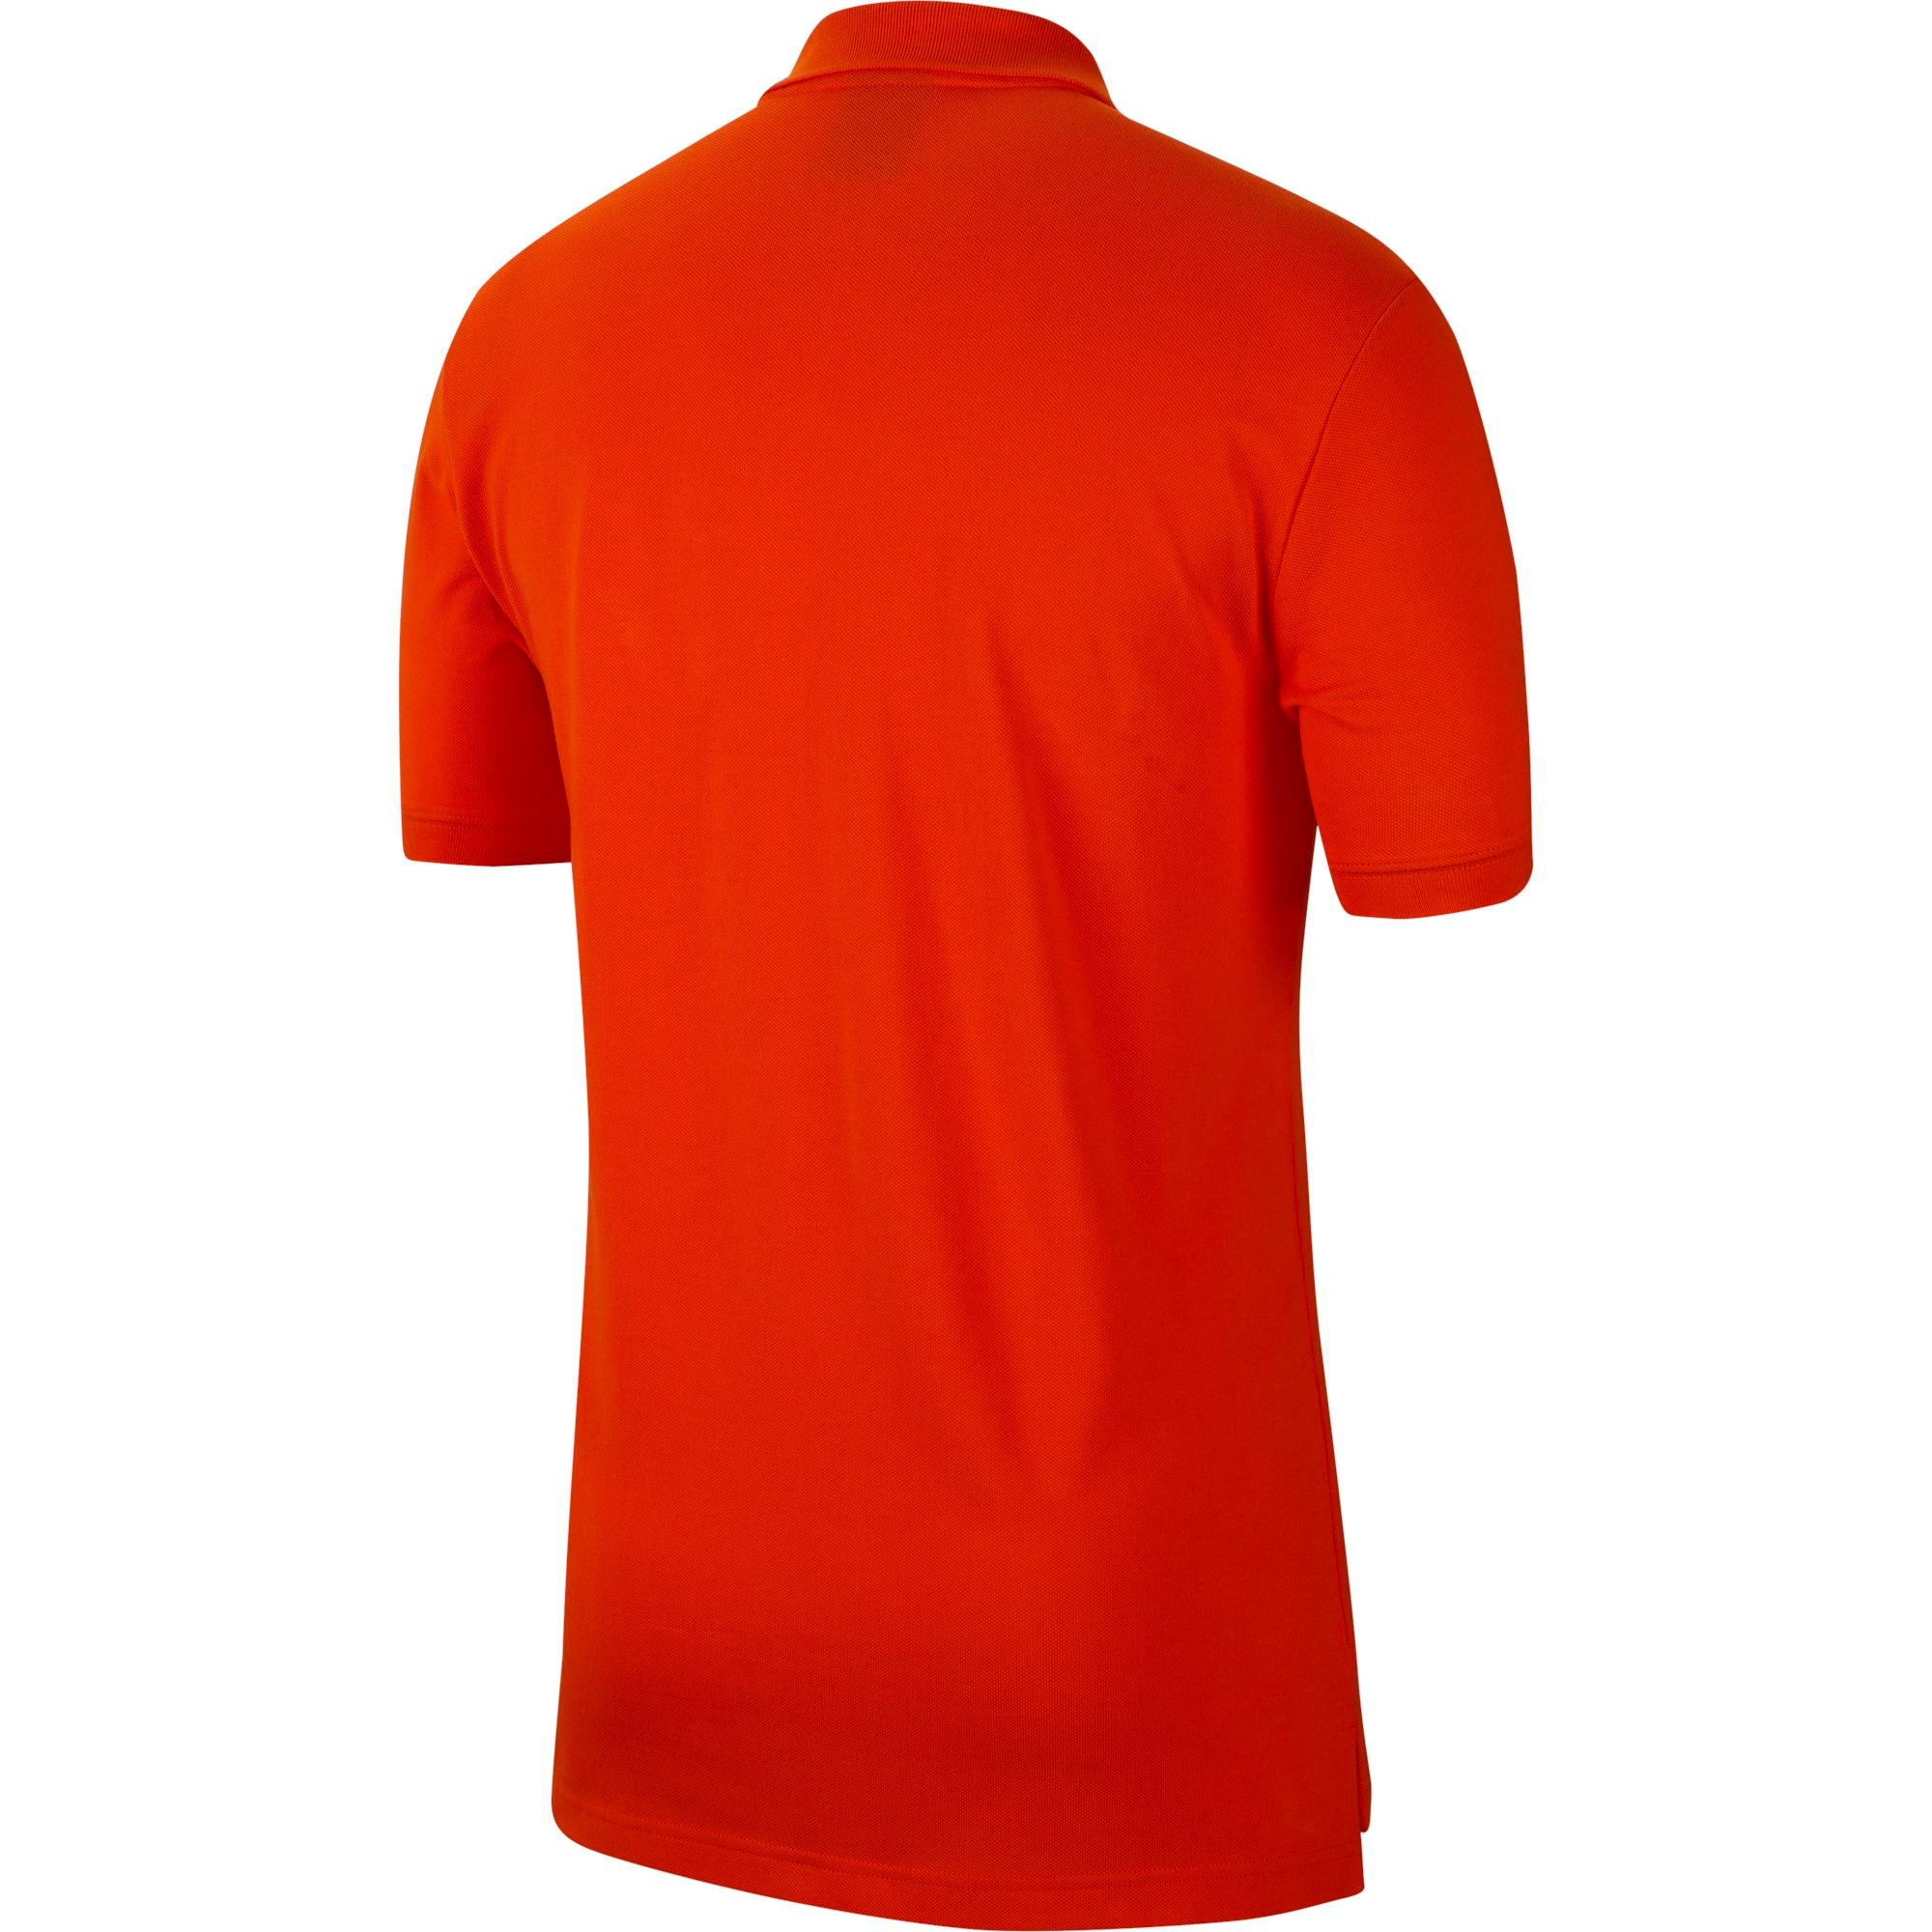 Nike Mens Sportswear Polo - Magma Orange/White SP-ApparelTees-Mens Nike